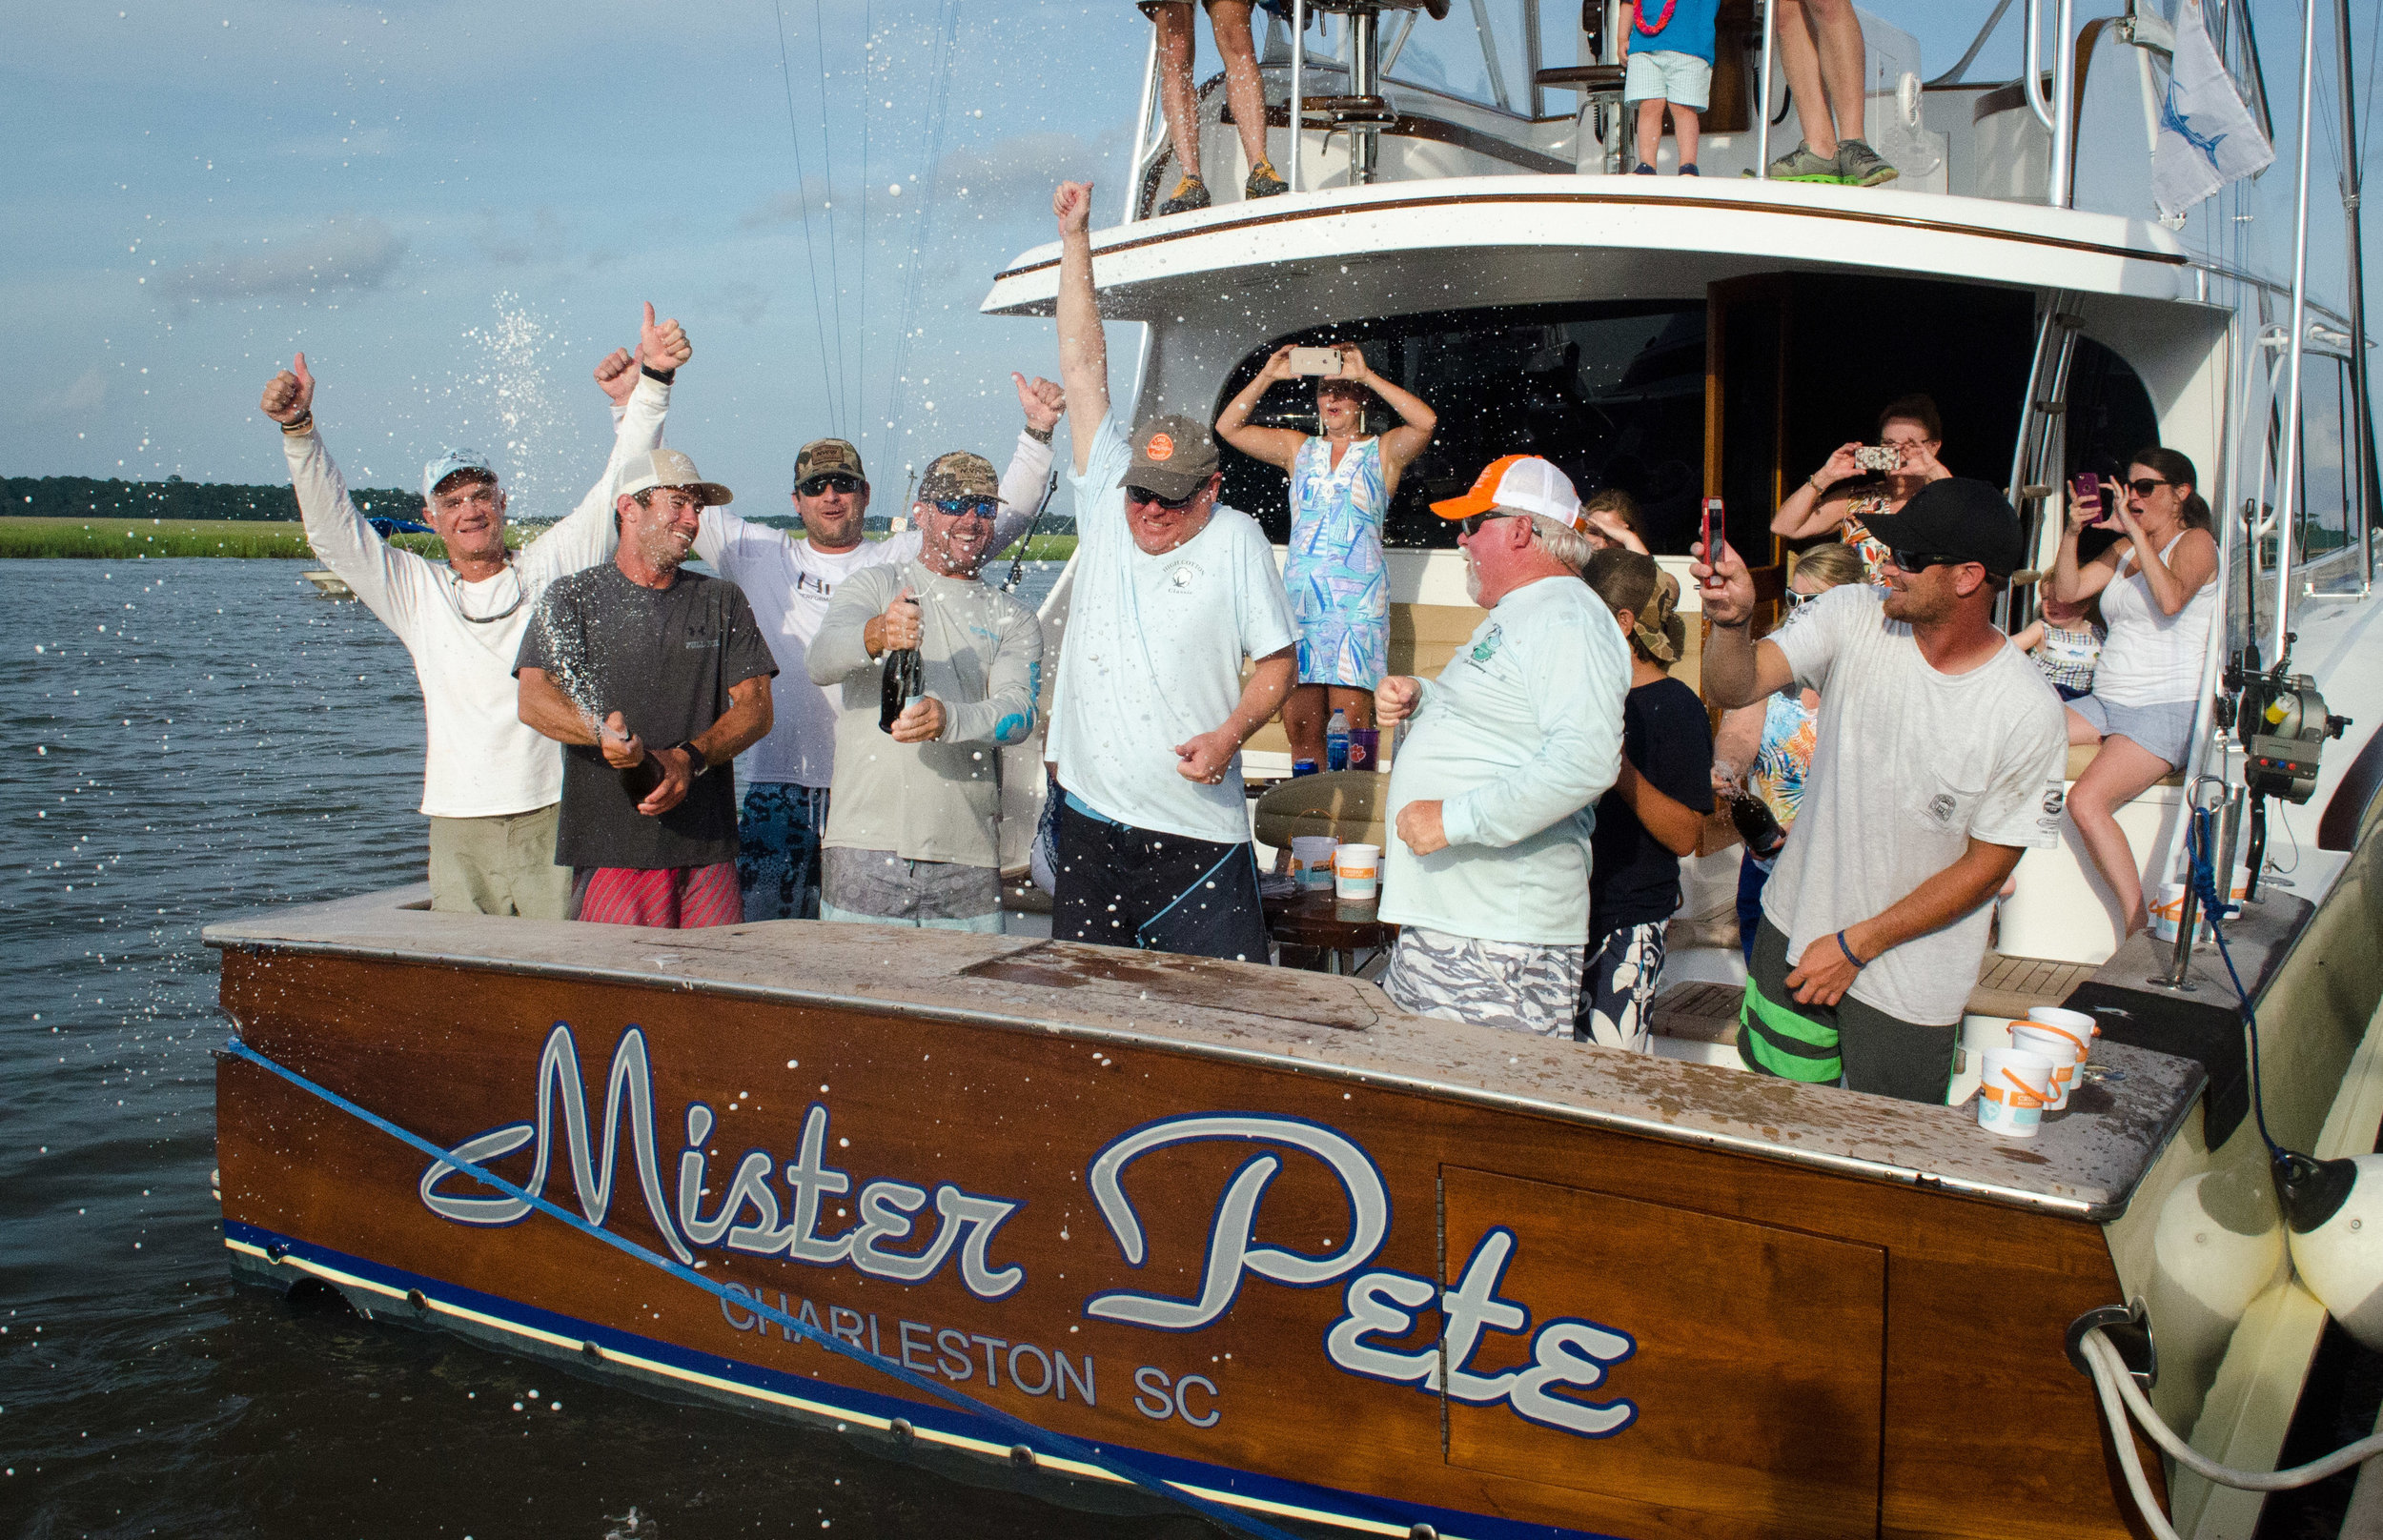 The Mister Pete celebrating their win_credit Cameron J Rhodes & SC Governor's Cup.jpg